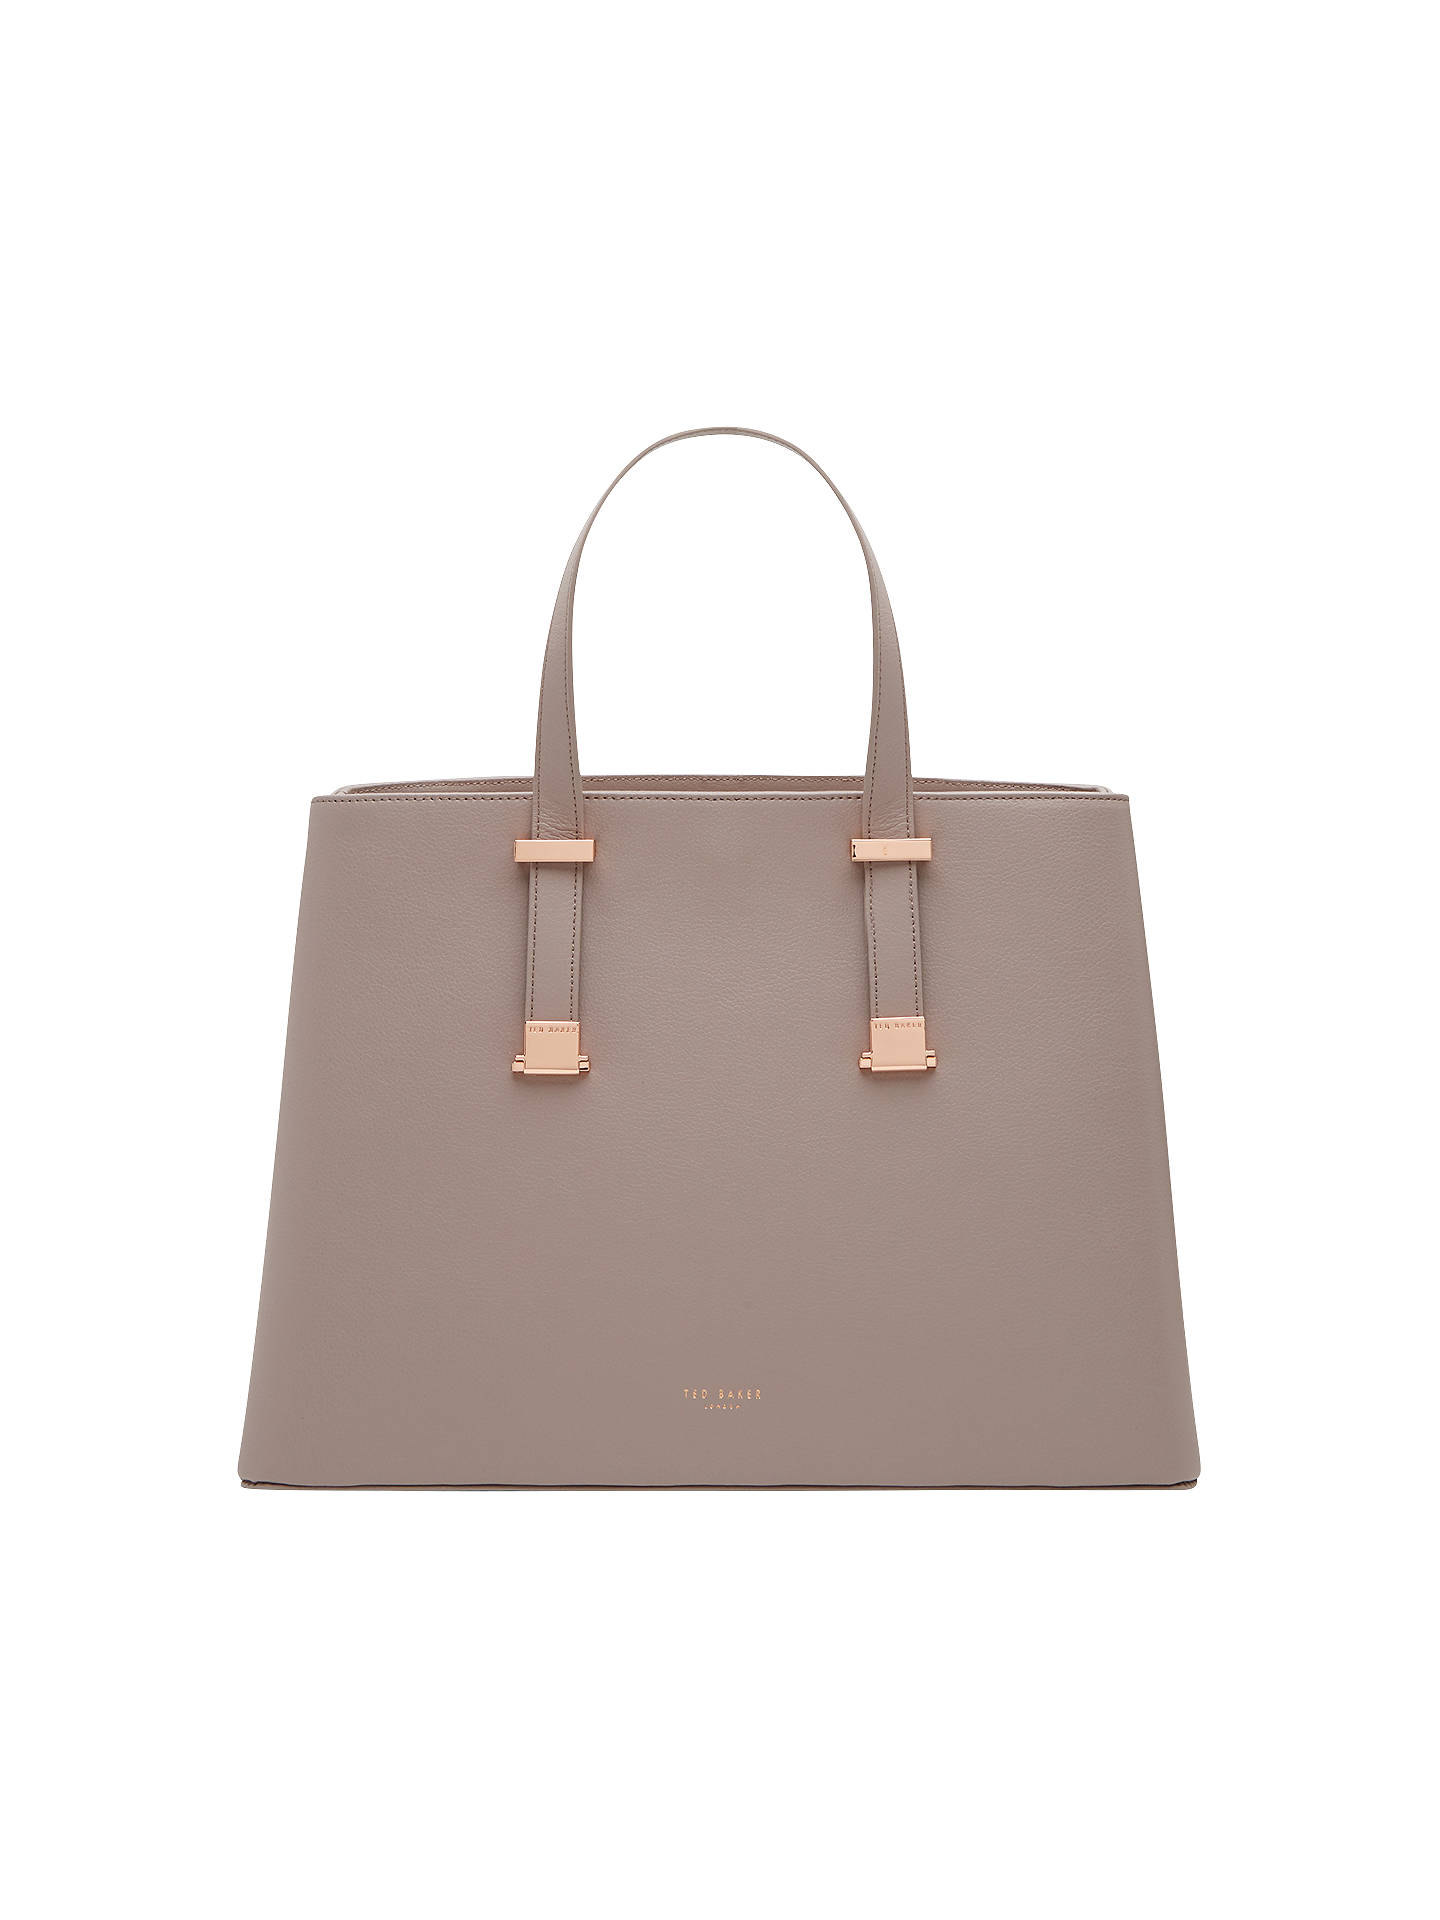 6dd4ae488e8be Ted Baker Alissaa Crosshatch Leather Tote Bag at John Lewis   Partners